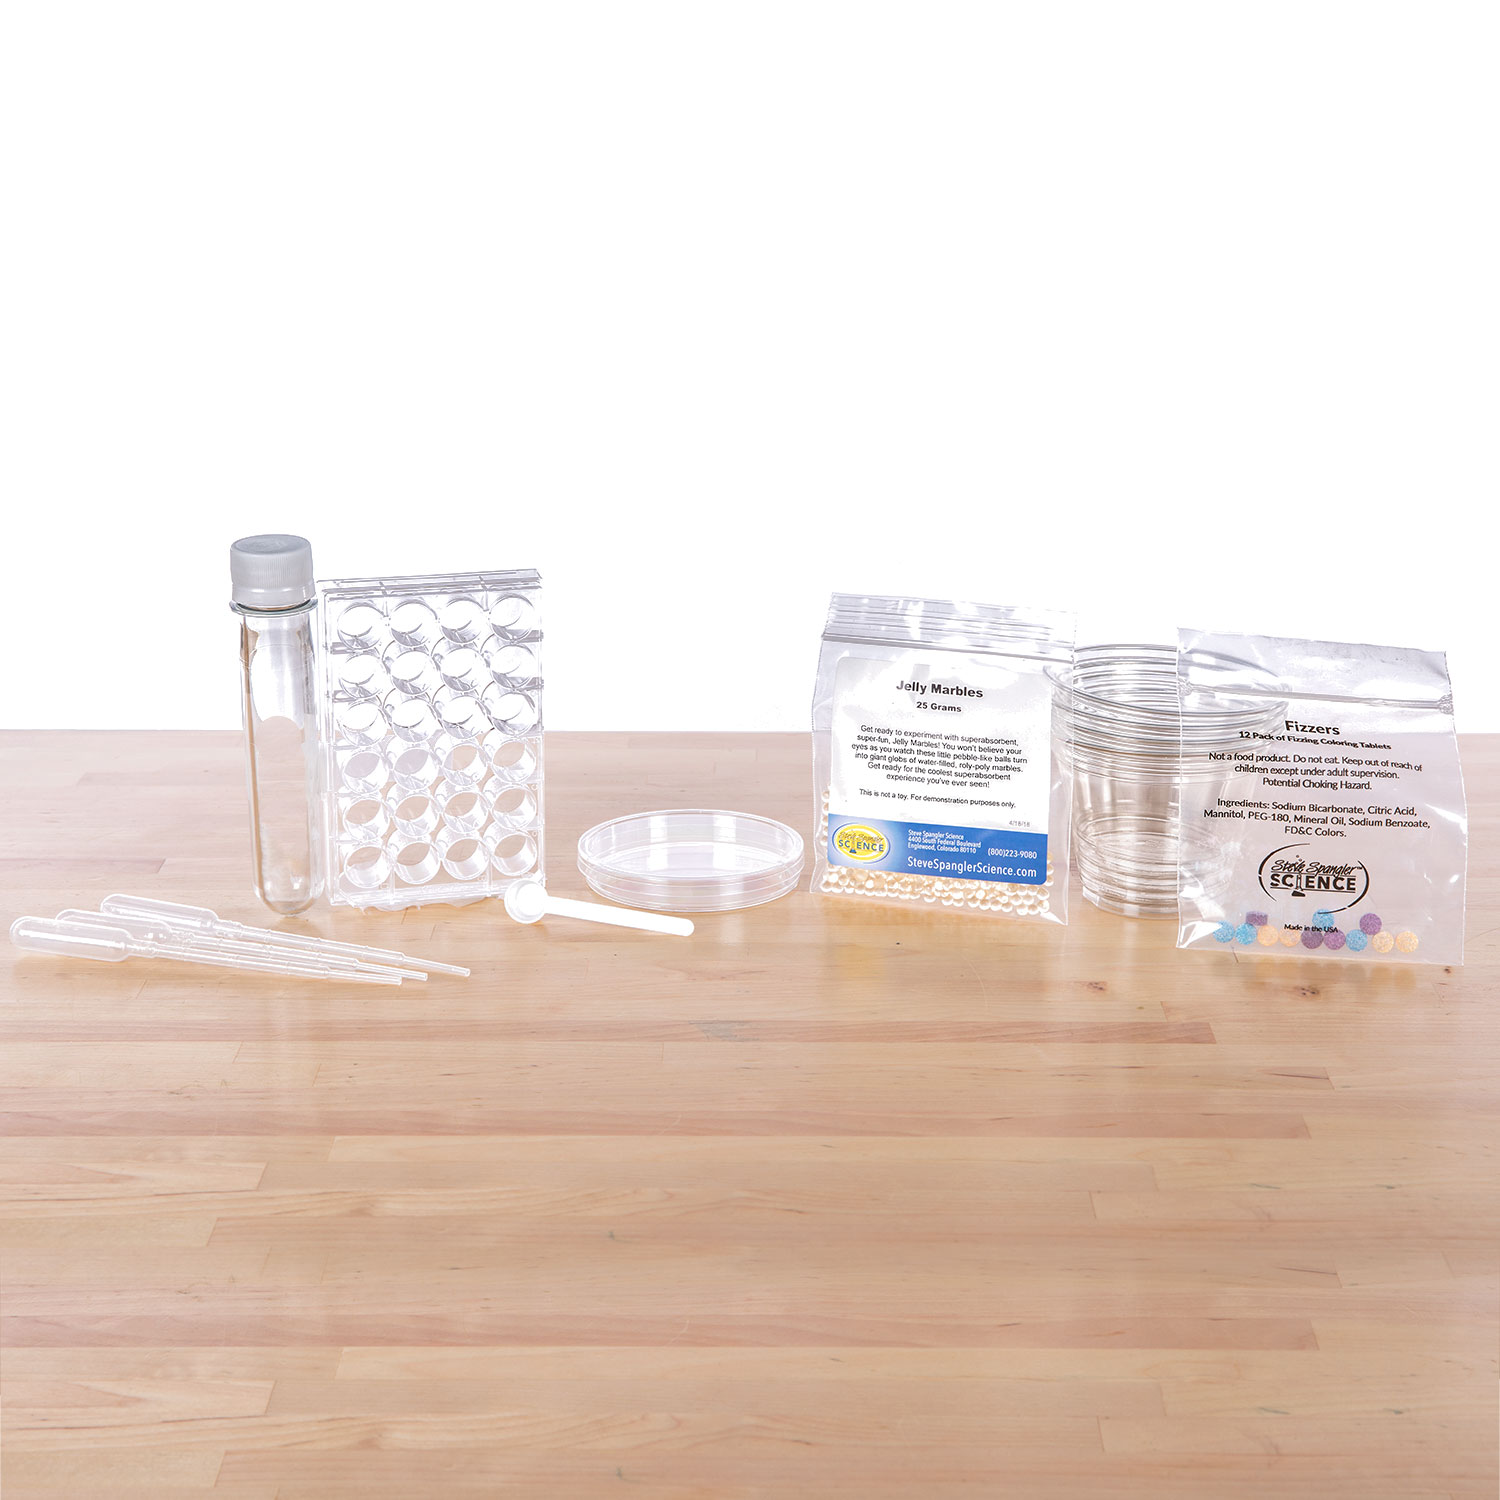 Jelly Marbles – Clear Spheres Kit